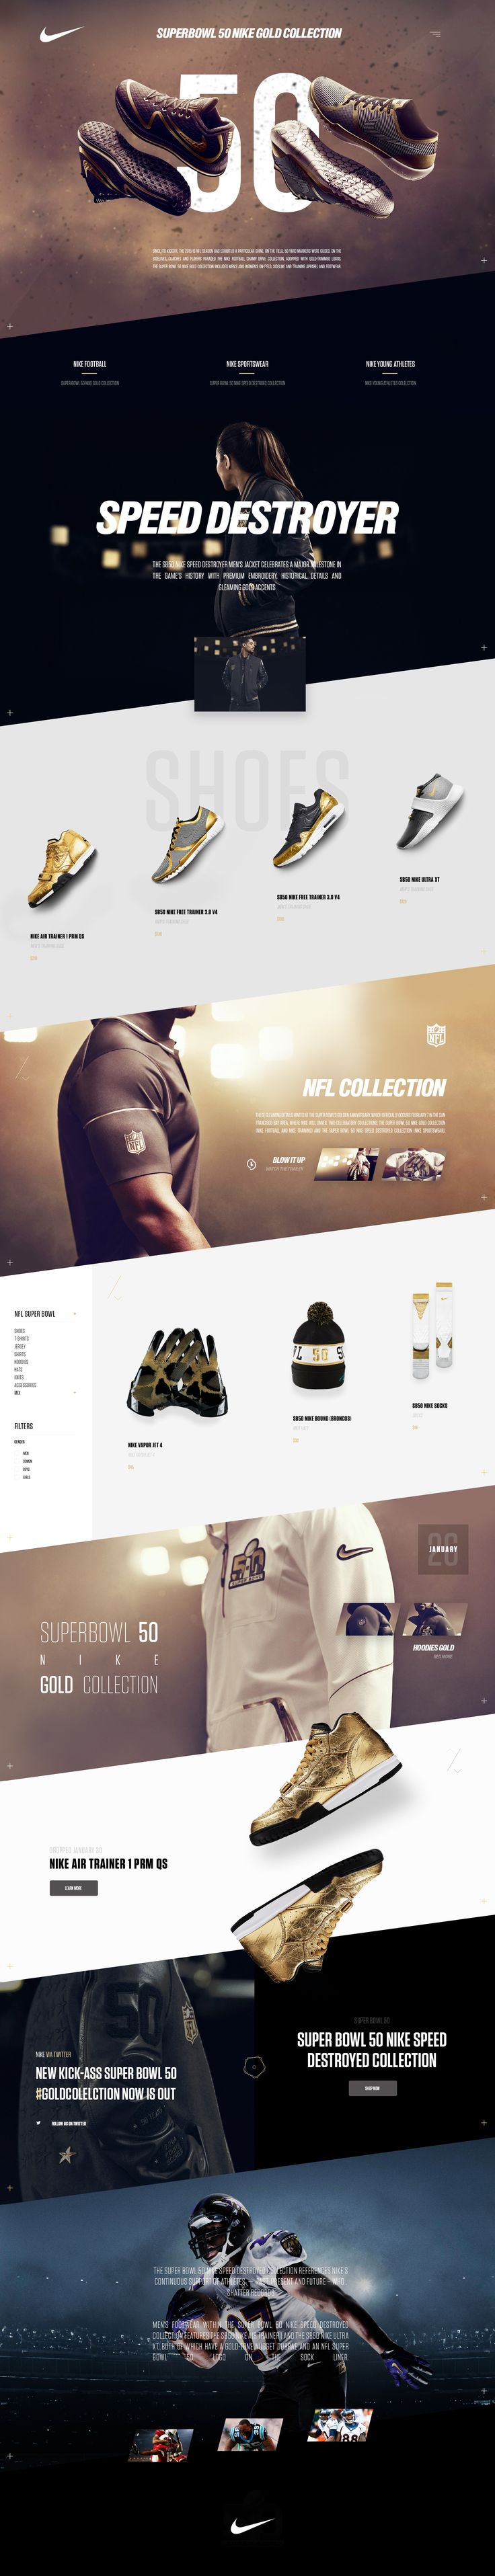 Superbowl 50 Nike Gold Collection.